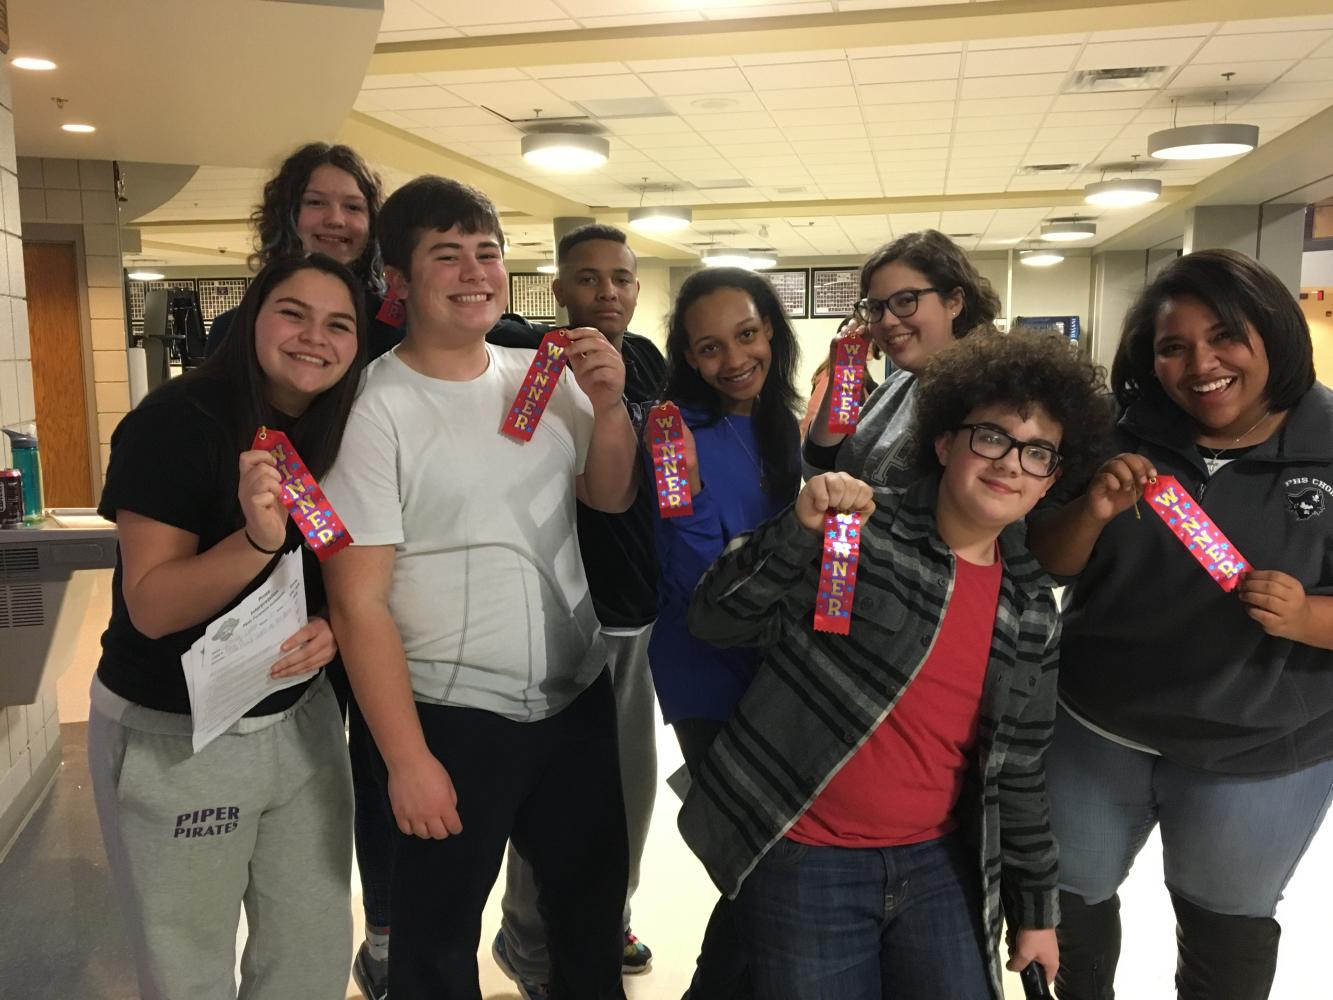 The forensics lock-in Jan. 20 included a mock tournament. These novices took first in their individual events. From left: Olivia Ortiz, Martha Wolf, Drew Novak, Kaulon Eason, Eden Barnes, Emma Bertrand, Trent Smith, and Alena Riley.